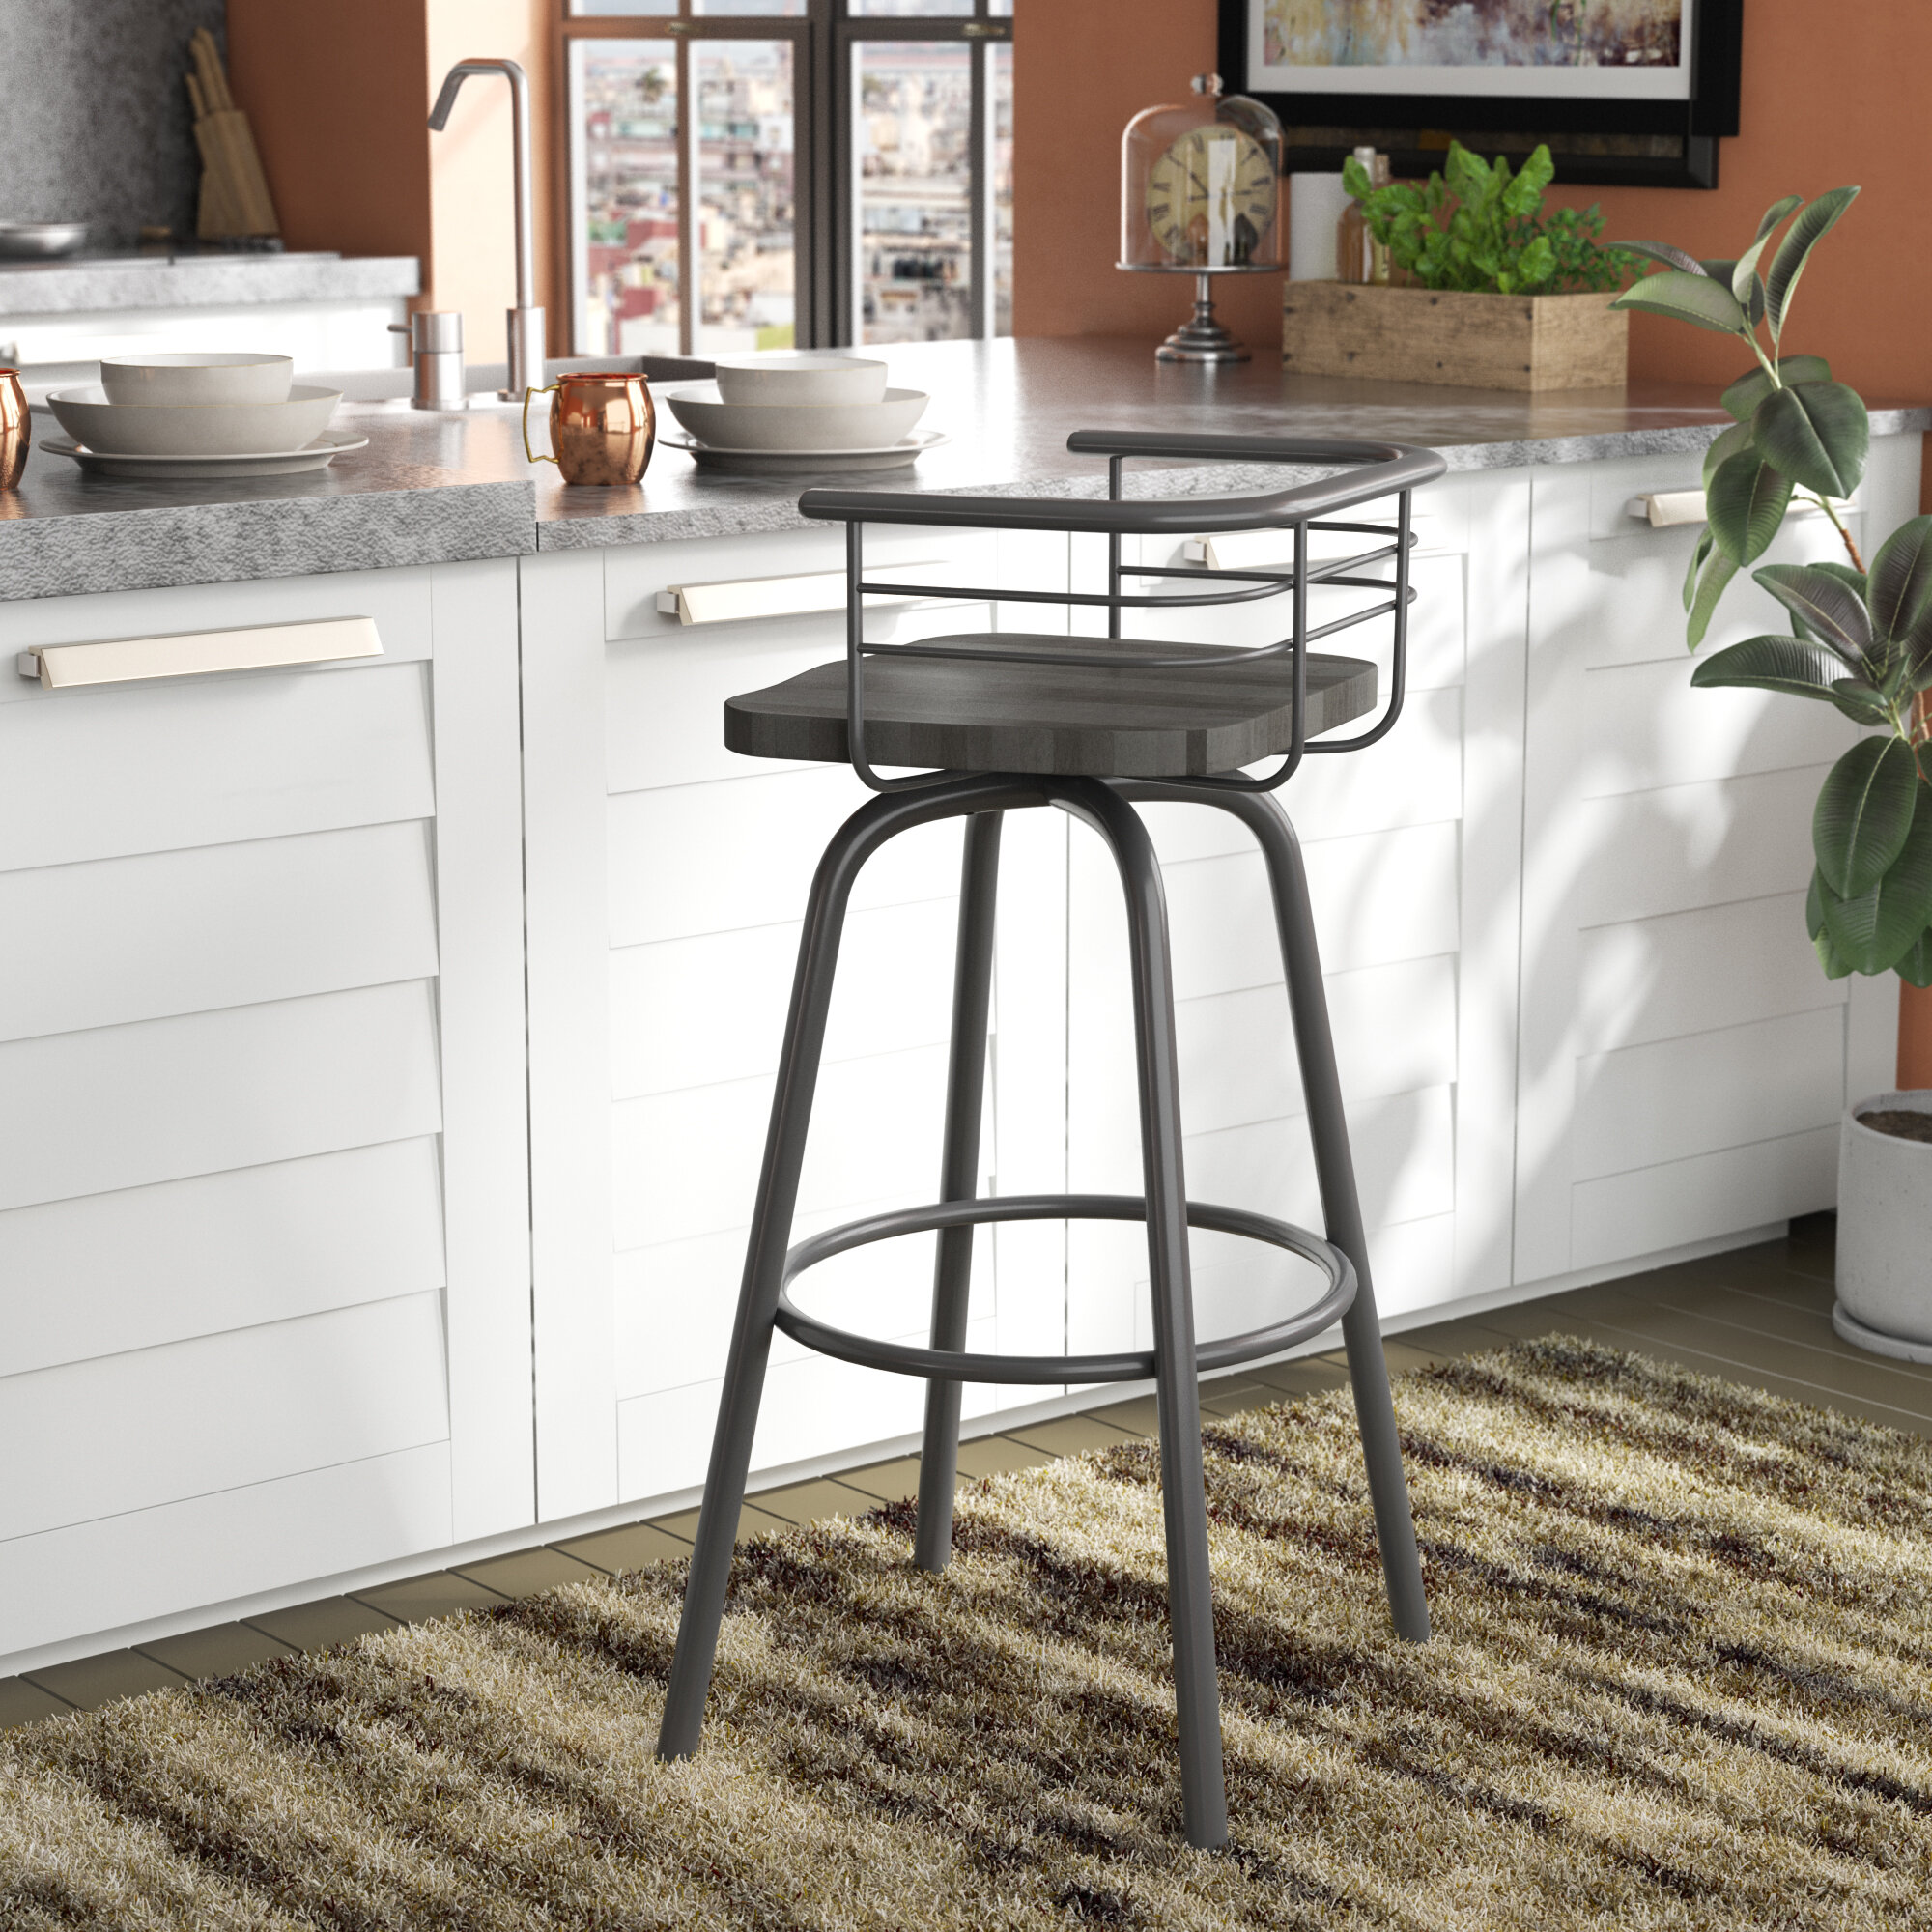 Trent austin design tungsten 26 swivel counter height stool reviews wayfair